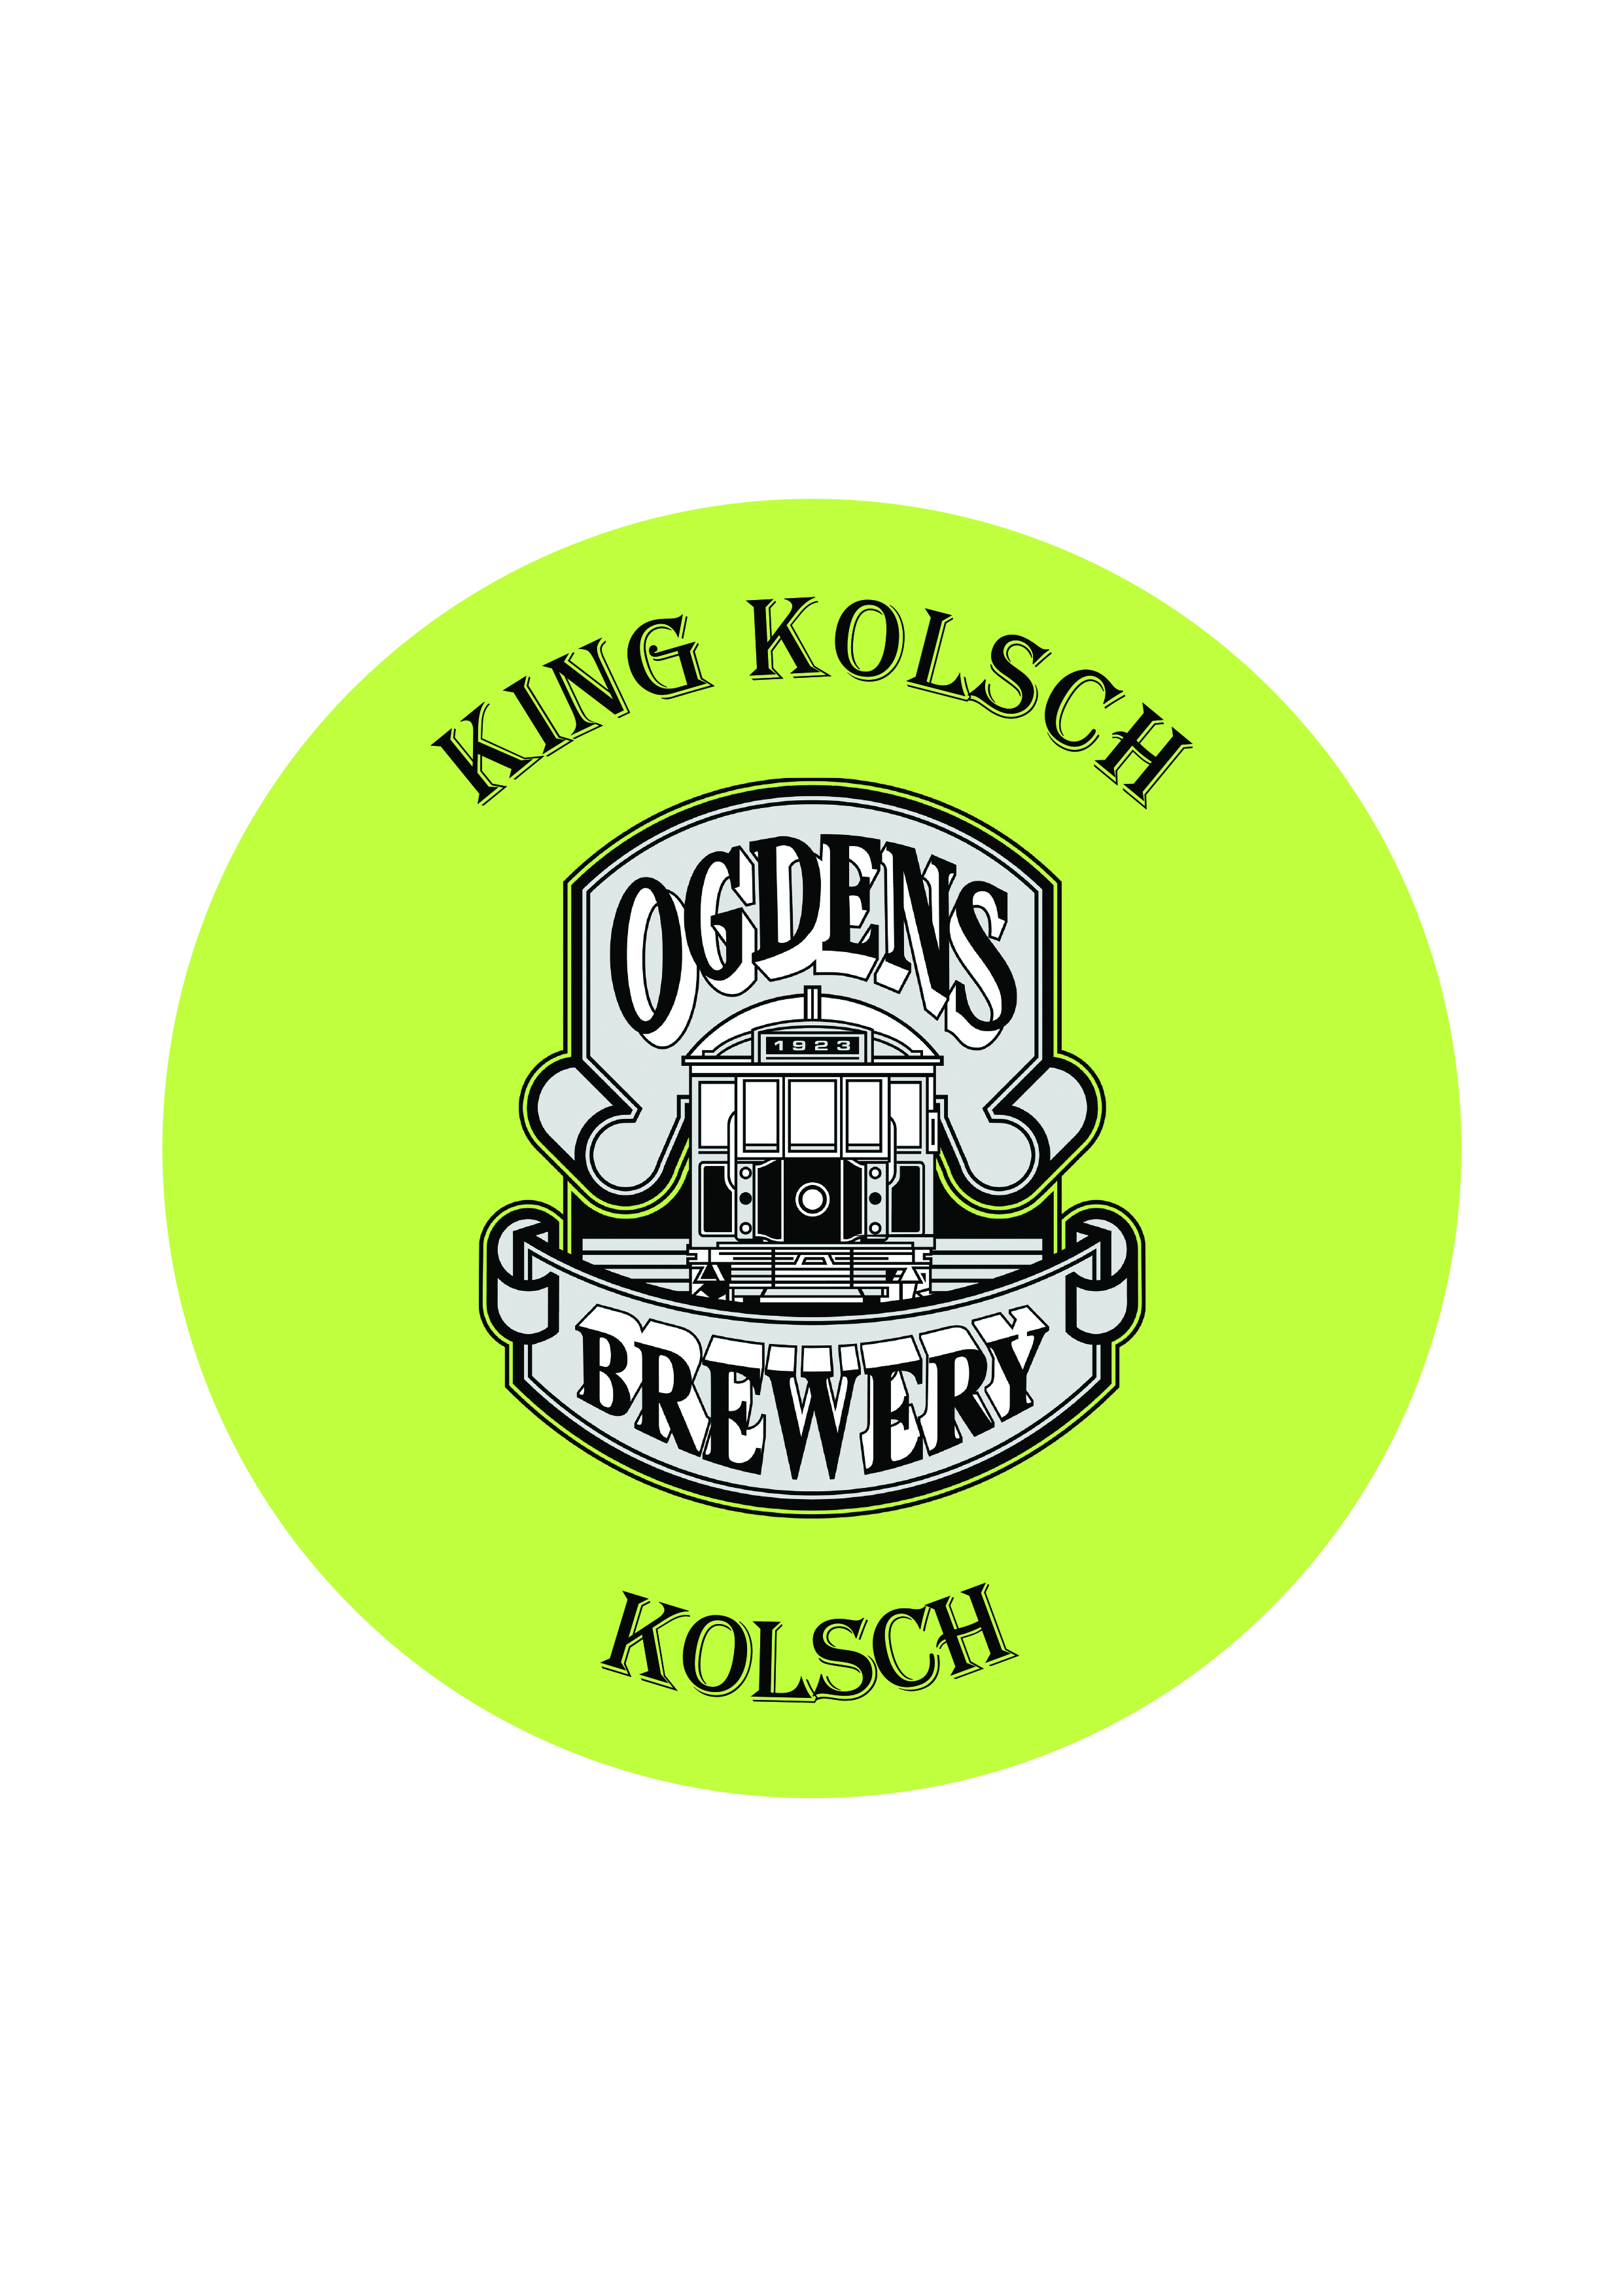 King Kolsch   Kolsch   4.8% - A classic German Pale ale. The style hails from the Cologne region in Germany. This ale is fermented at cooler temperatures to produce a less fruity ale character and is clear and attractive in appearance.